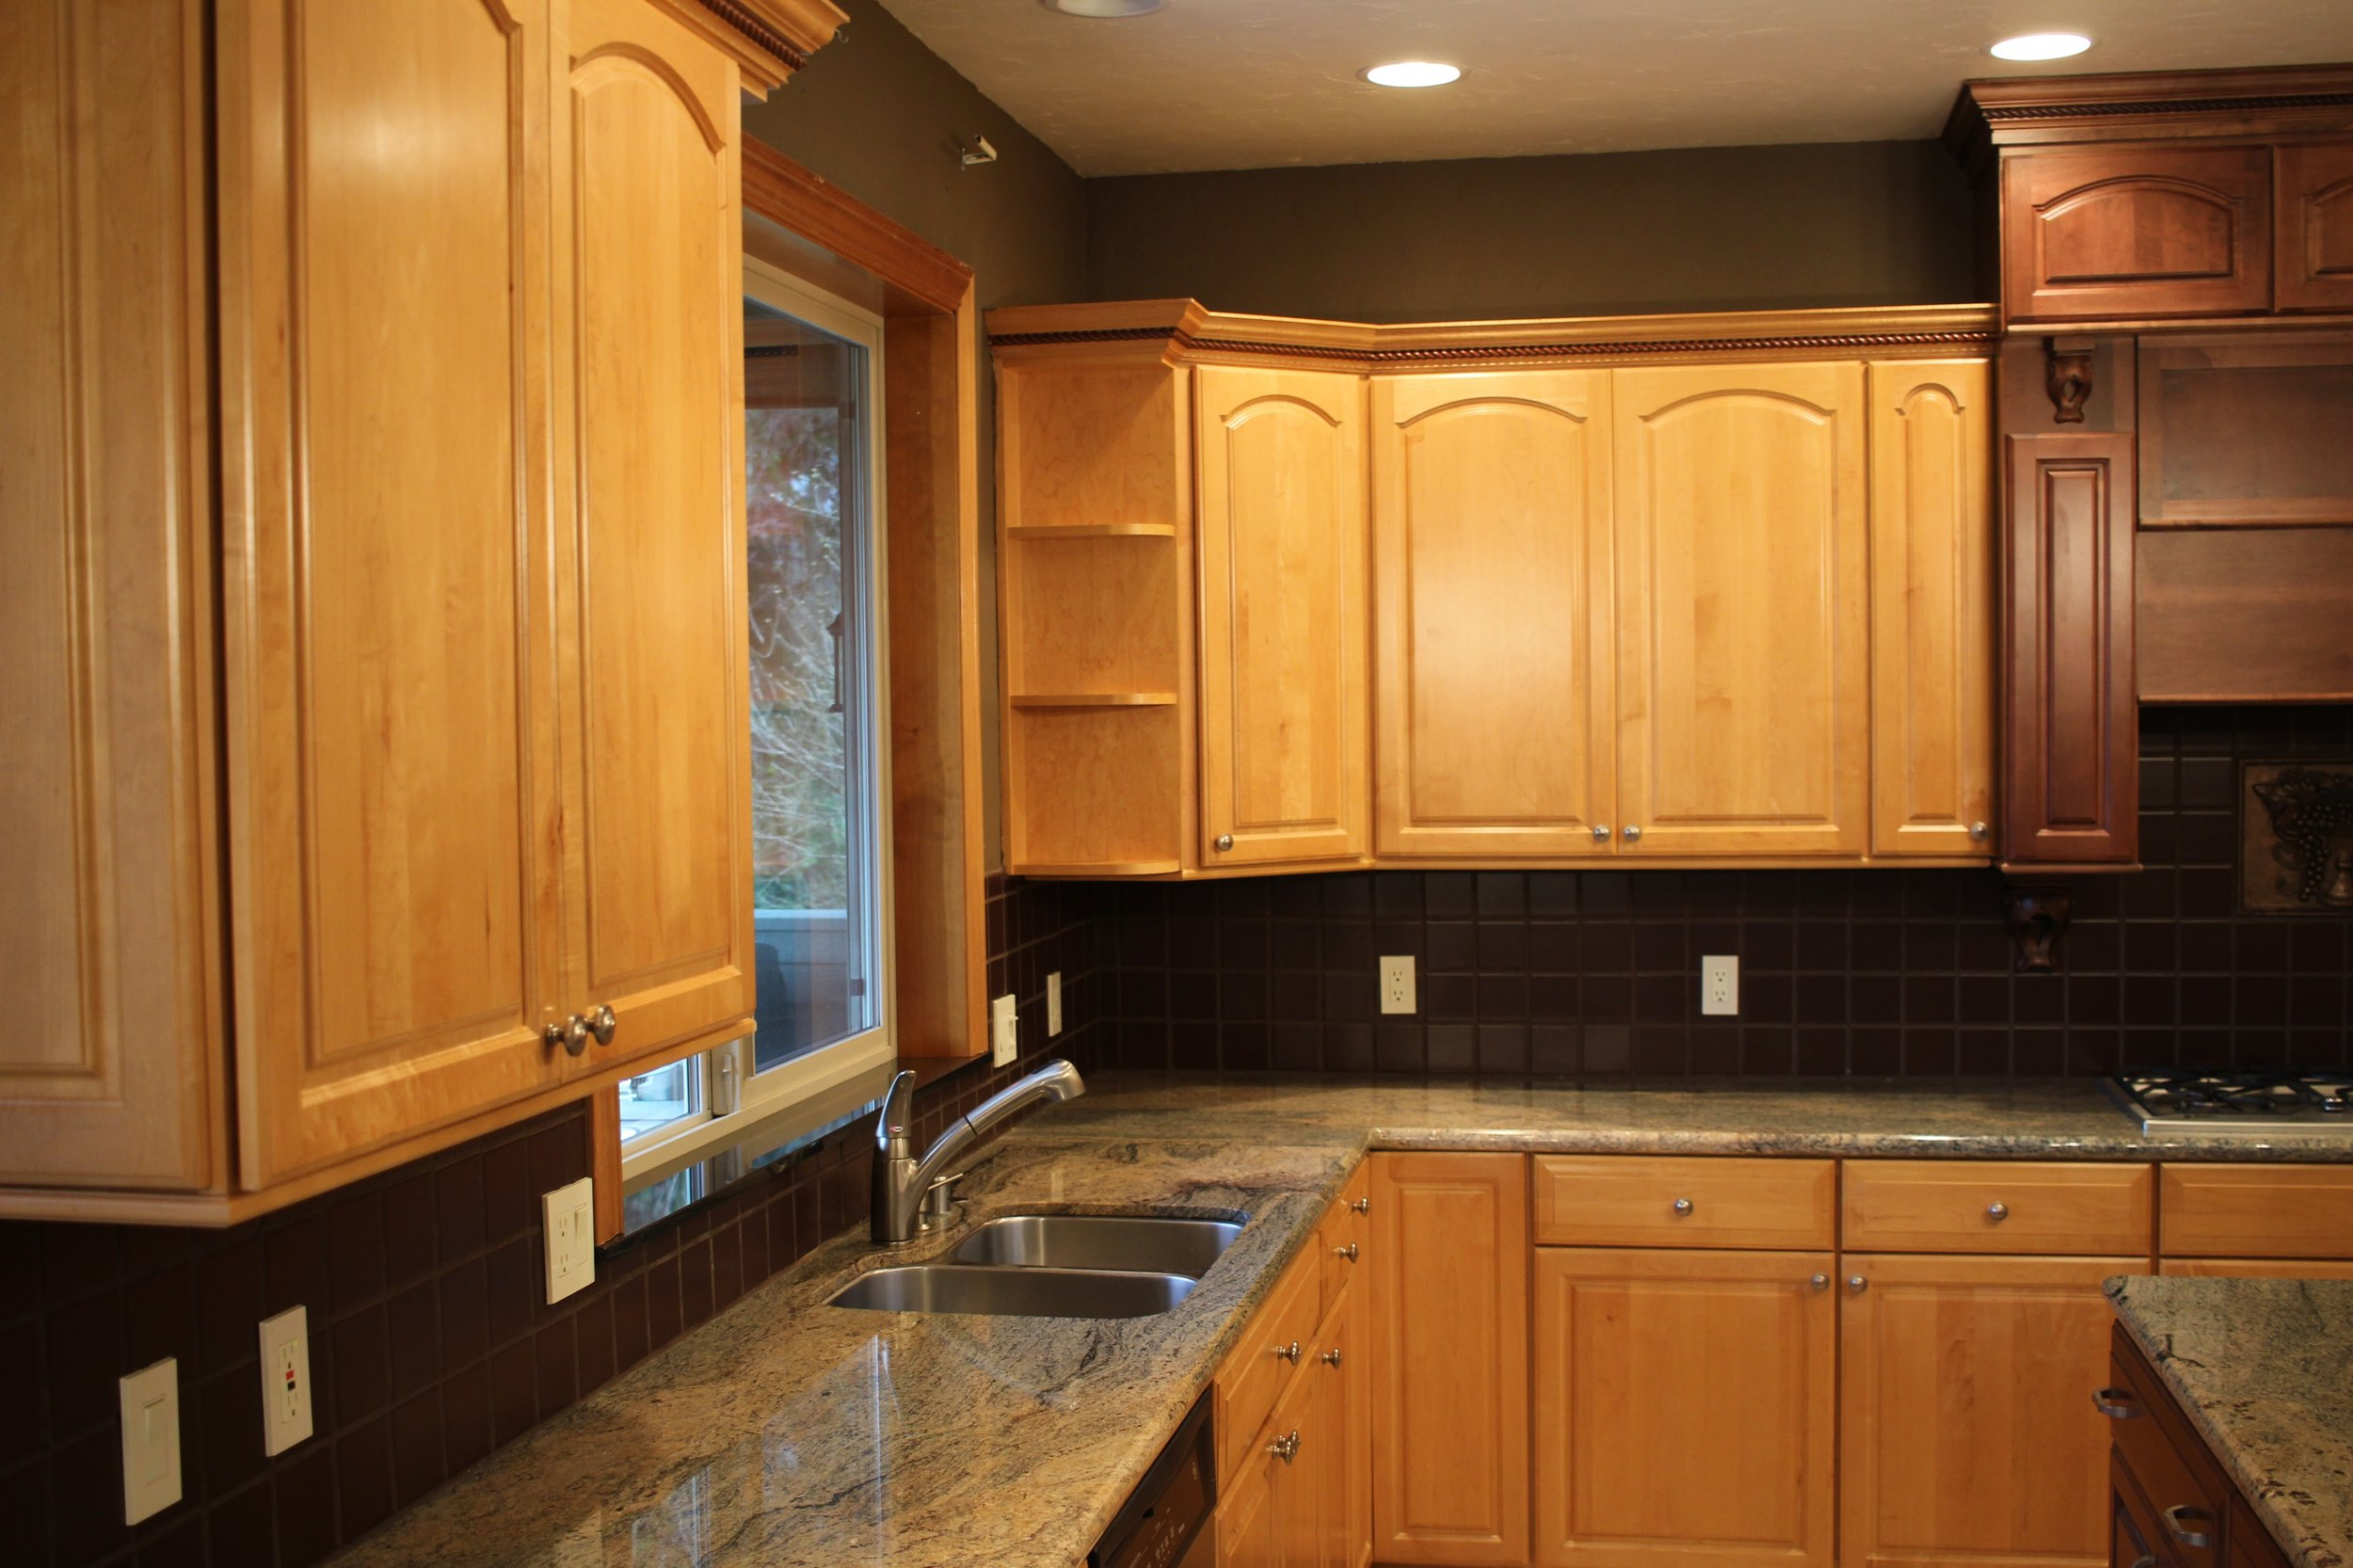 Before - High quality cabinets with an outdated look.